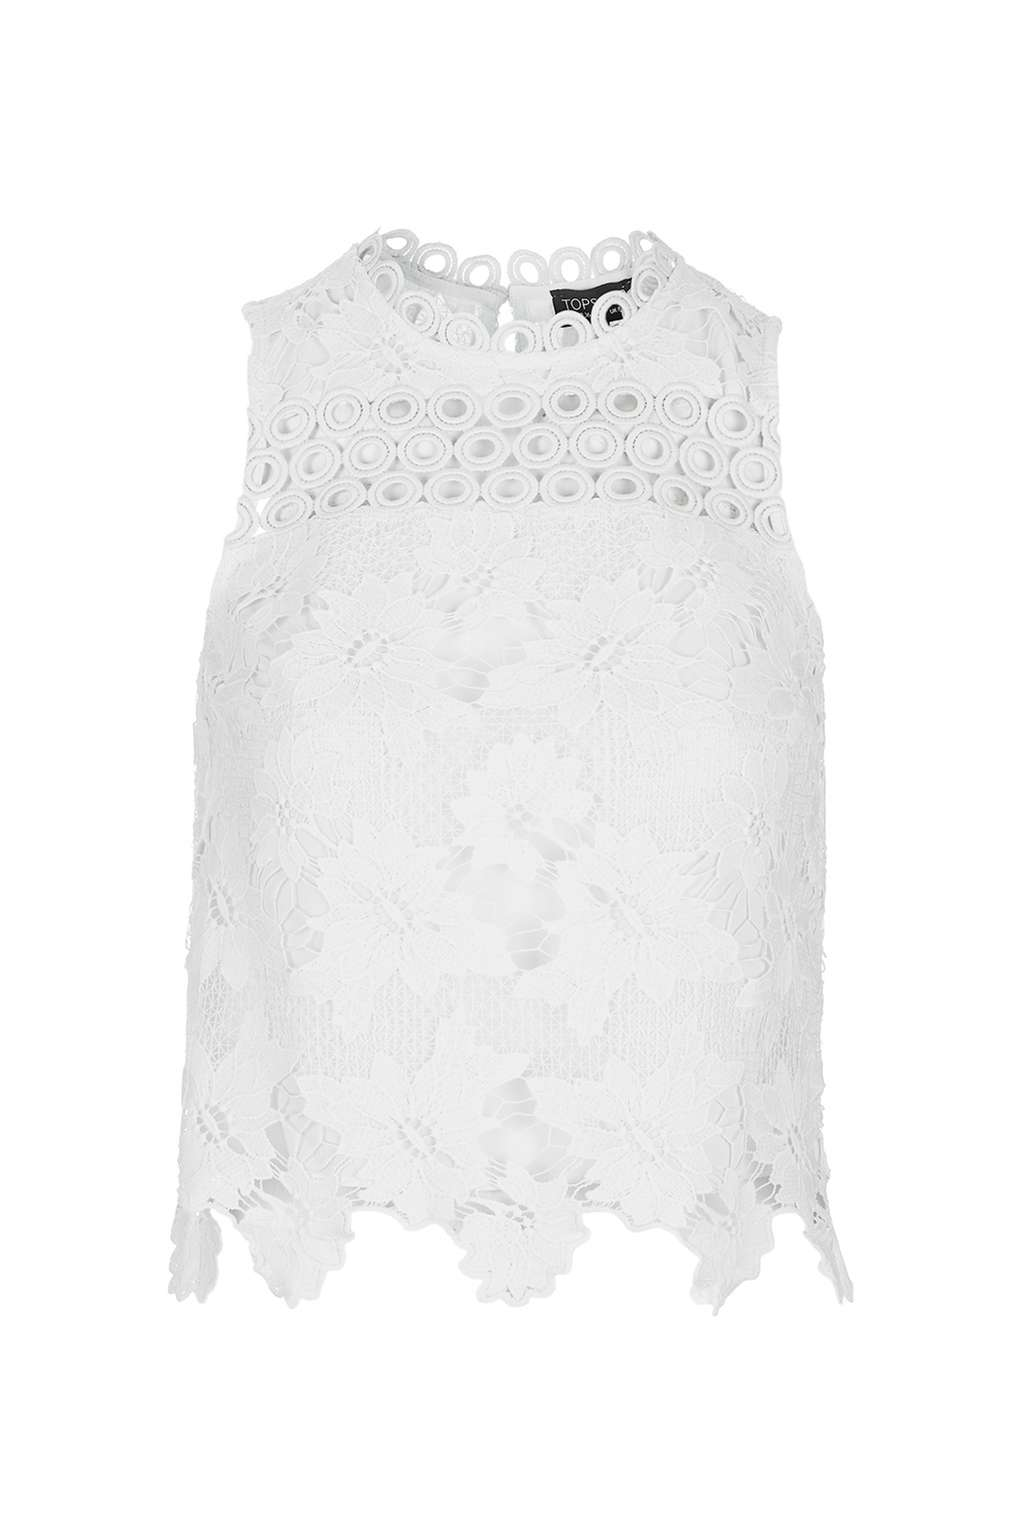 White Lace Top Topshop.jpg